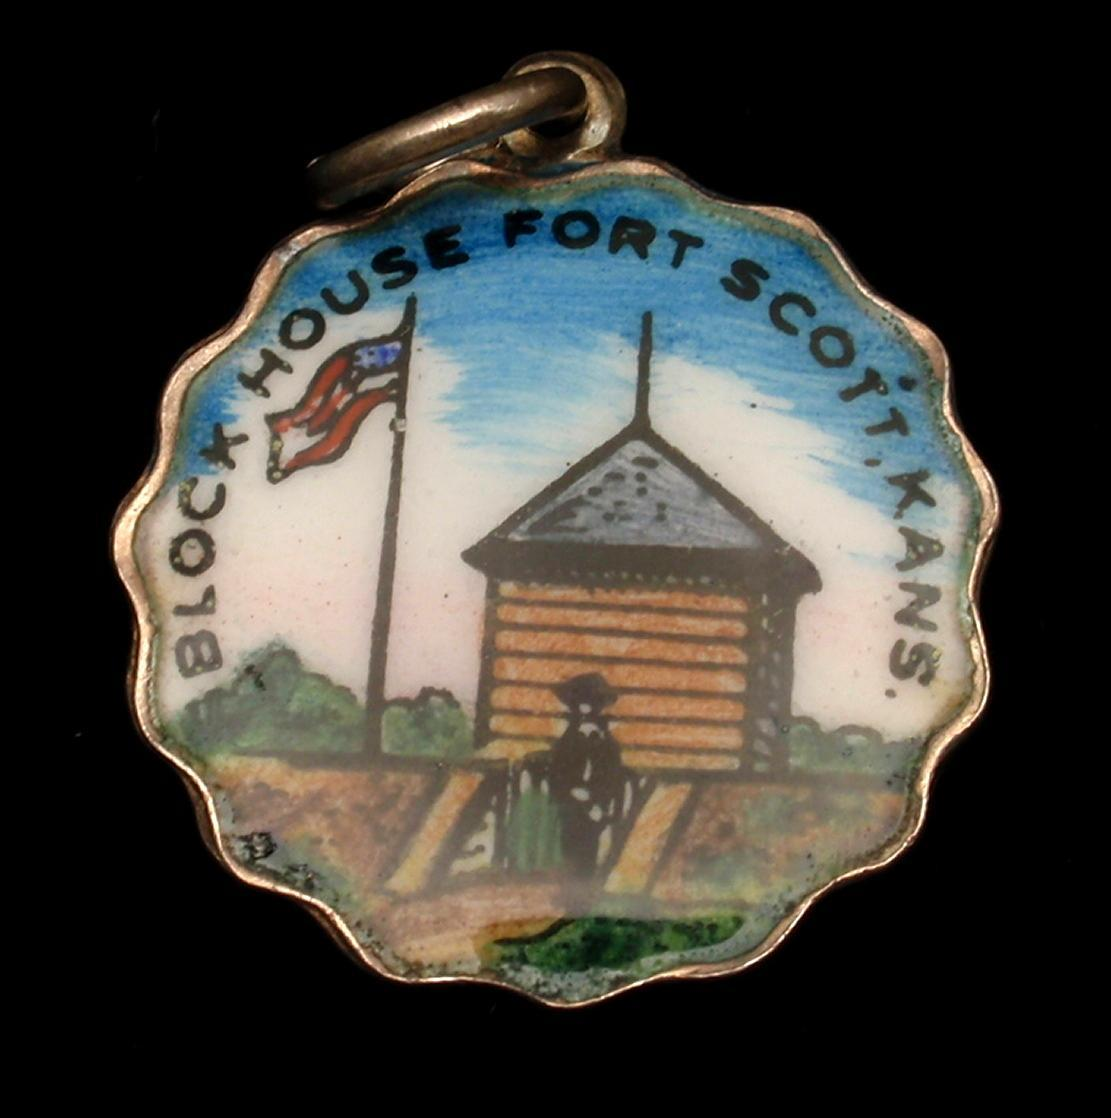 Block House Fort Scott Kansas Silver & Enamel Charm Travel Souvenir